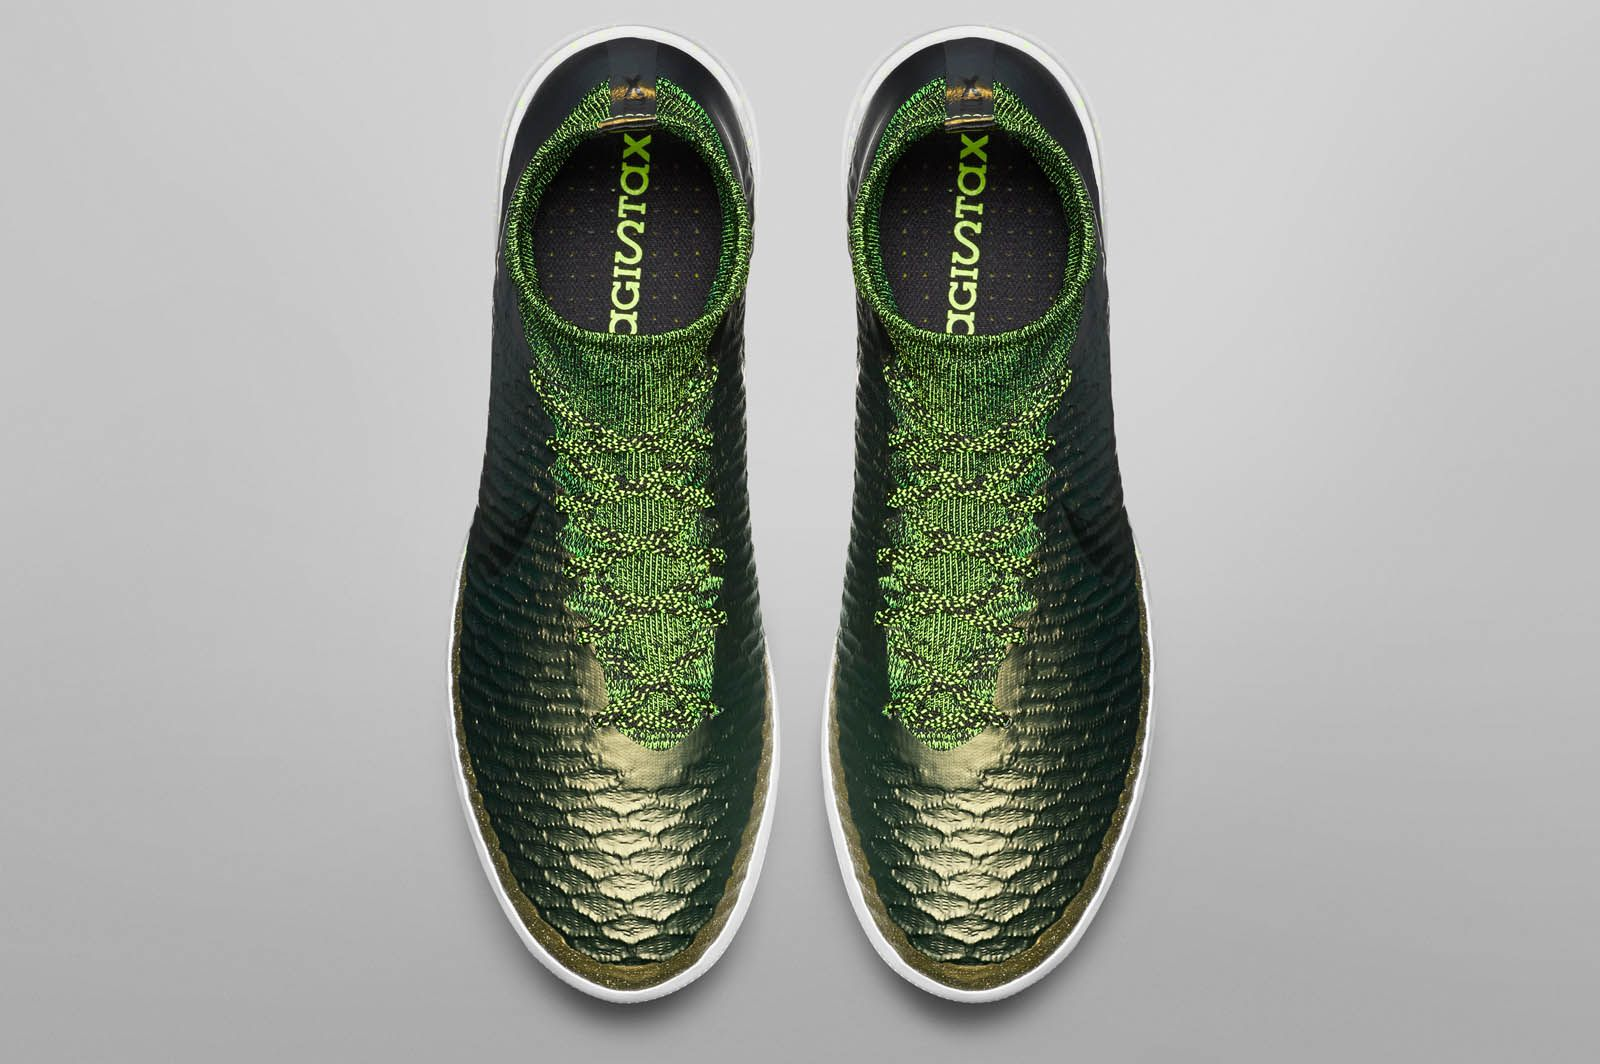 Gold Nike Magista X Proximo 2015-2016 Boots Released - Footy Headlines